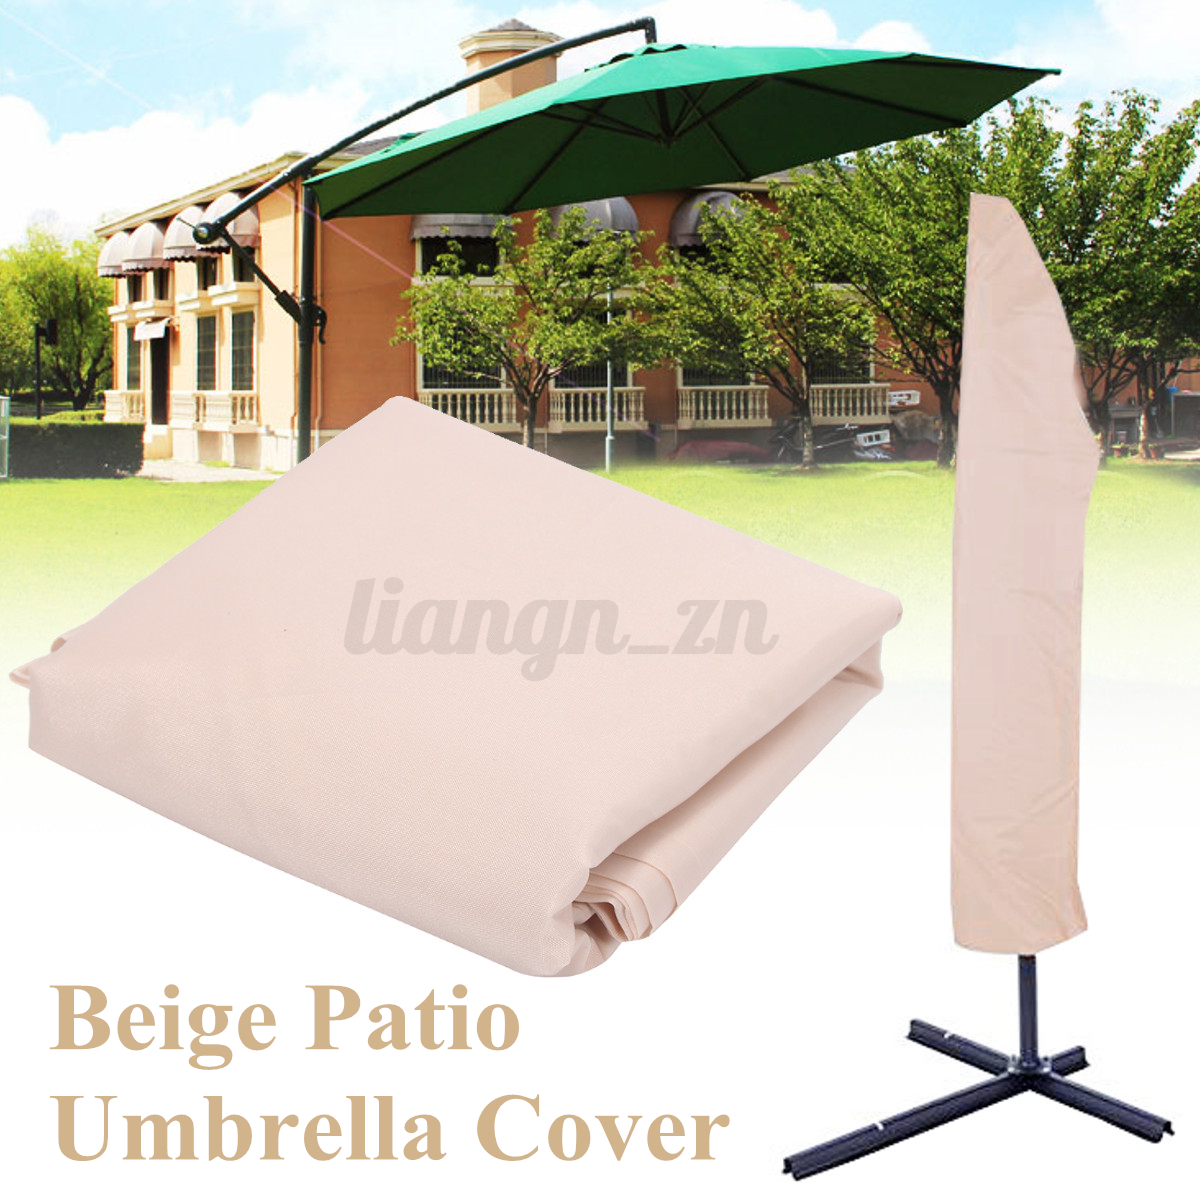 b che couvre patio parasol parapluie meuble etanche housse de protection jardin ebay. Black Bedroom Furniture Sets. Home Design Ideas